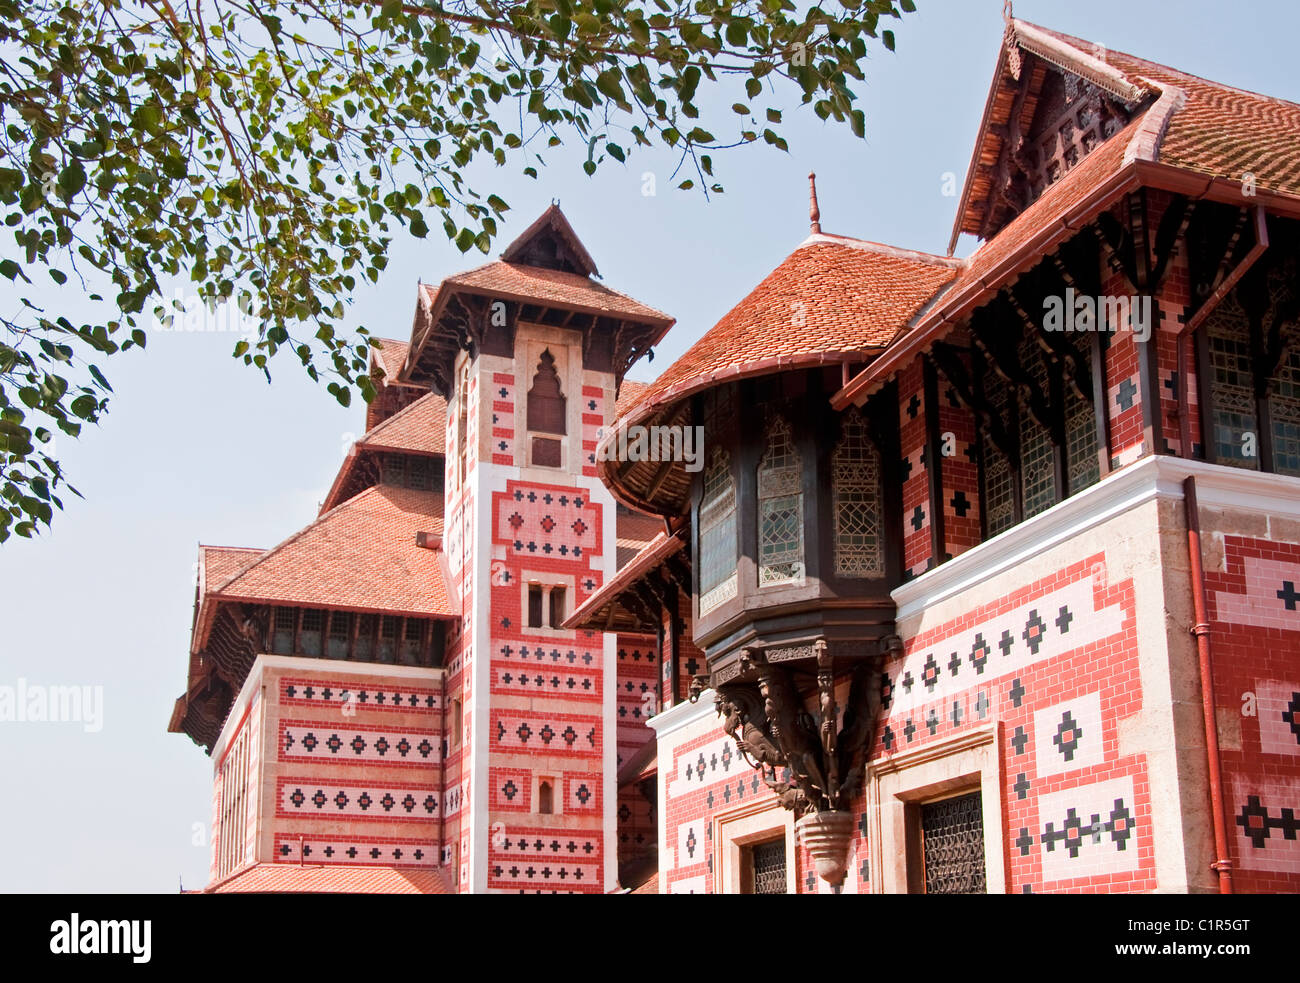 Napier Museum of Arts and Crafts in Indo-Saracenic style by architect Robert Chisholm in Kerala's capital of - Stock Image